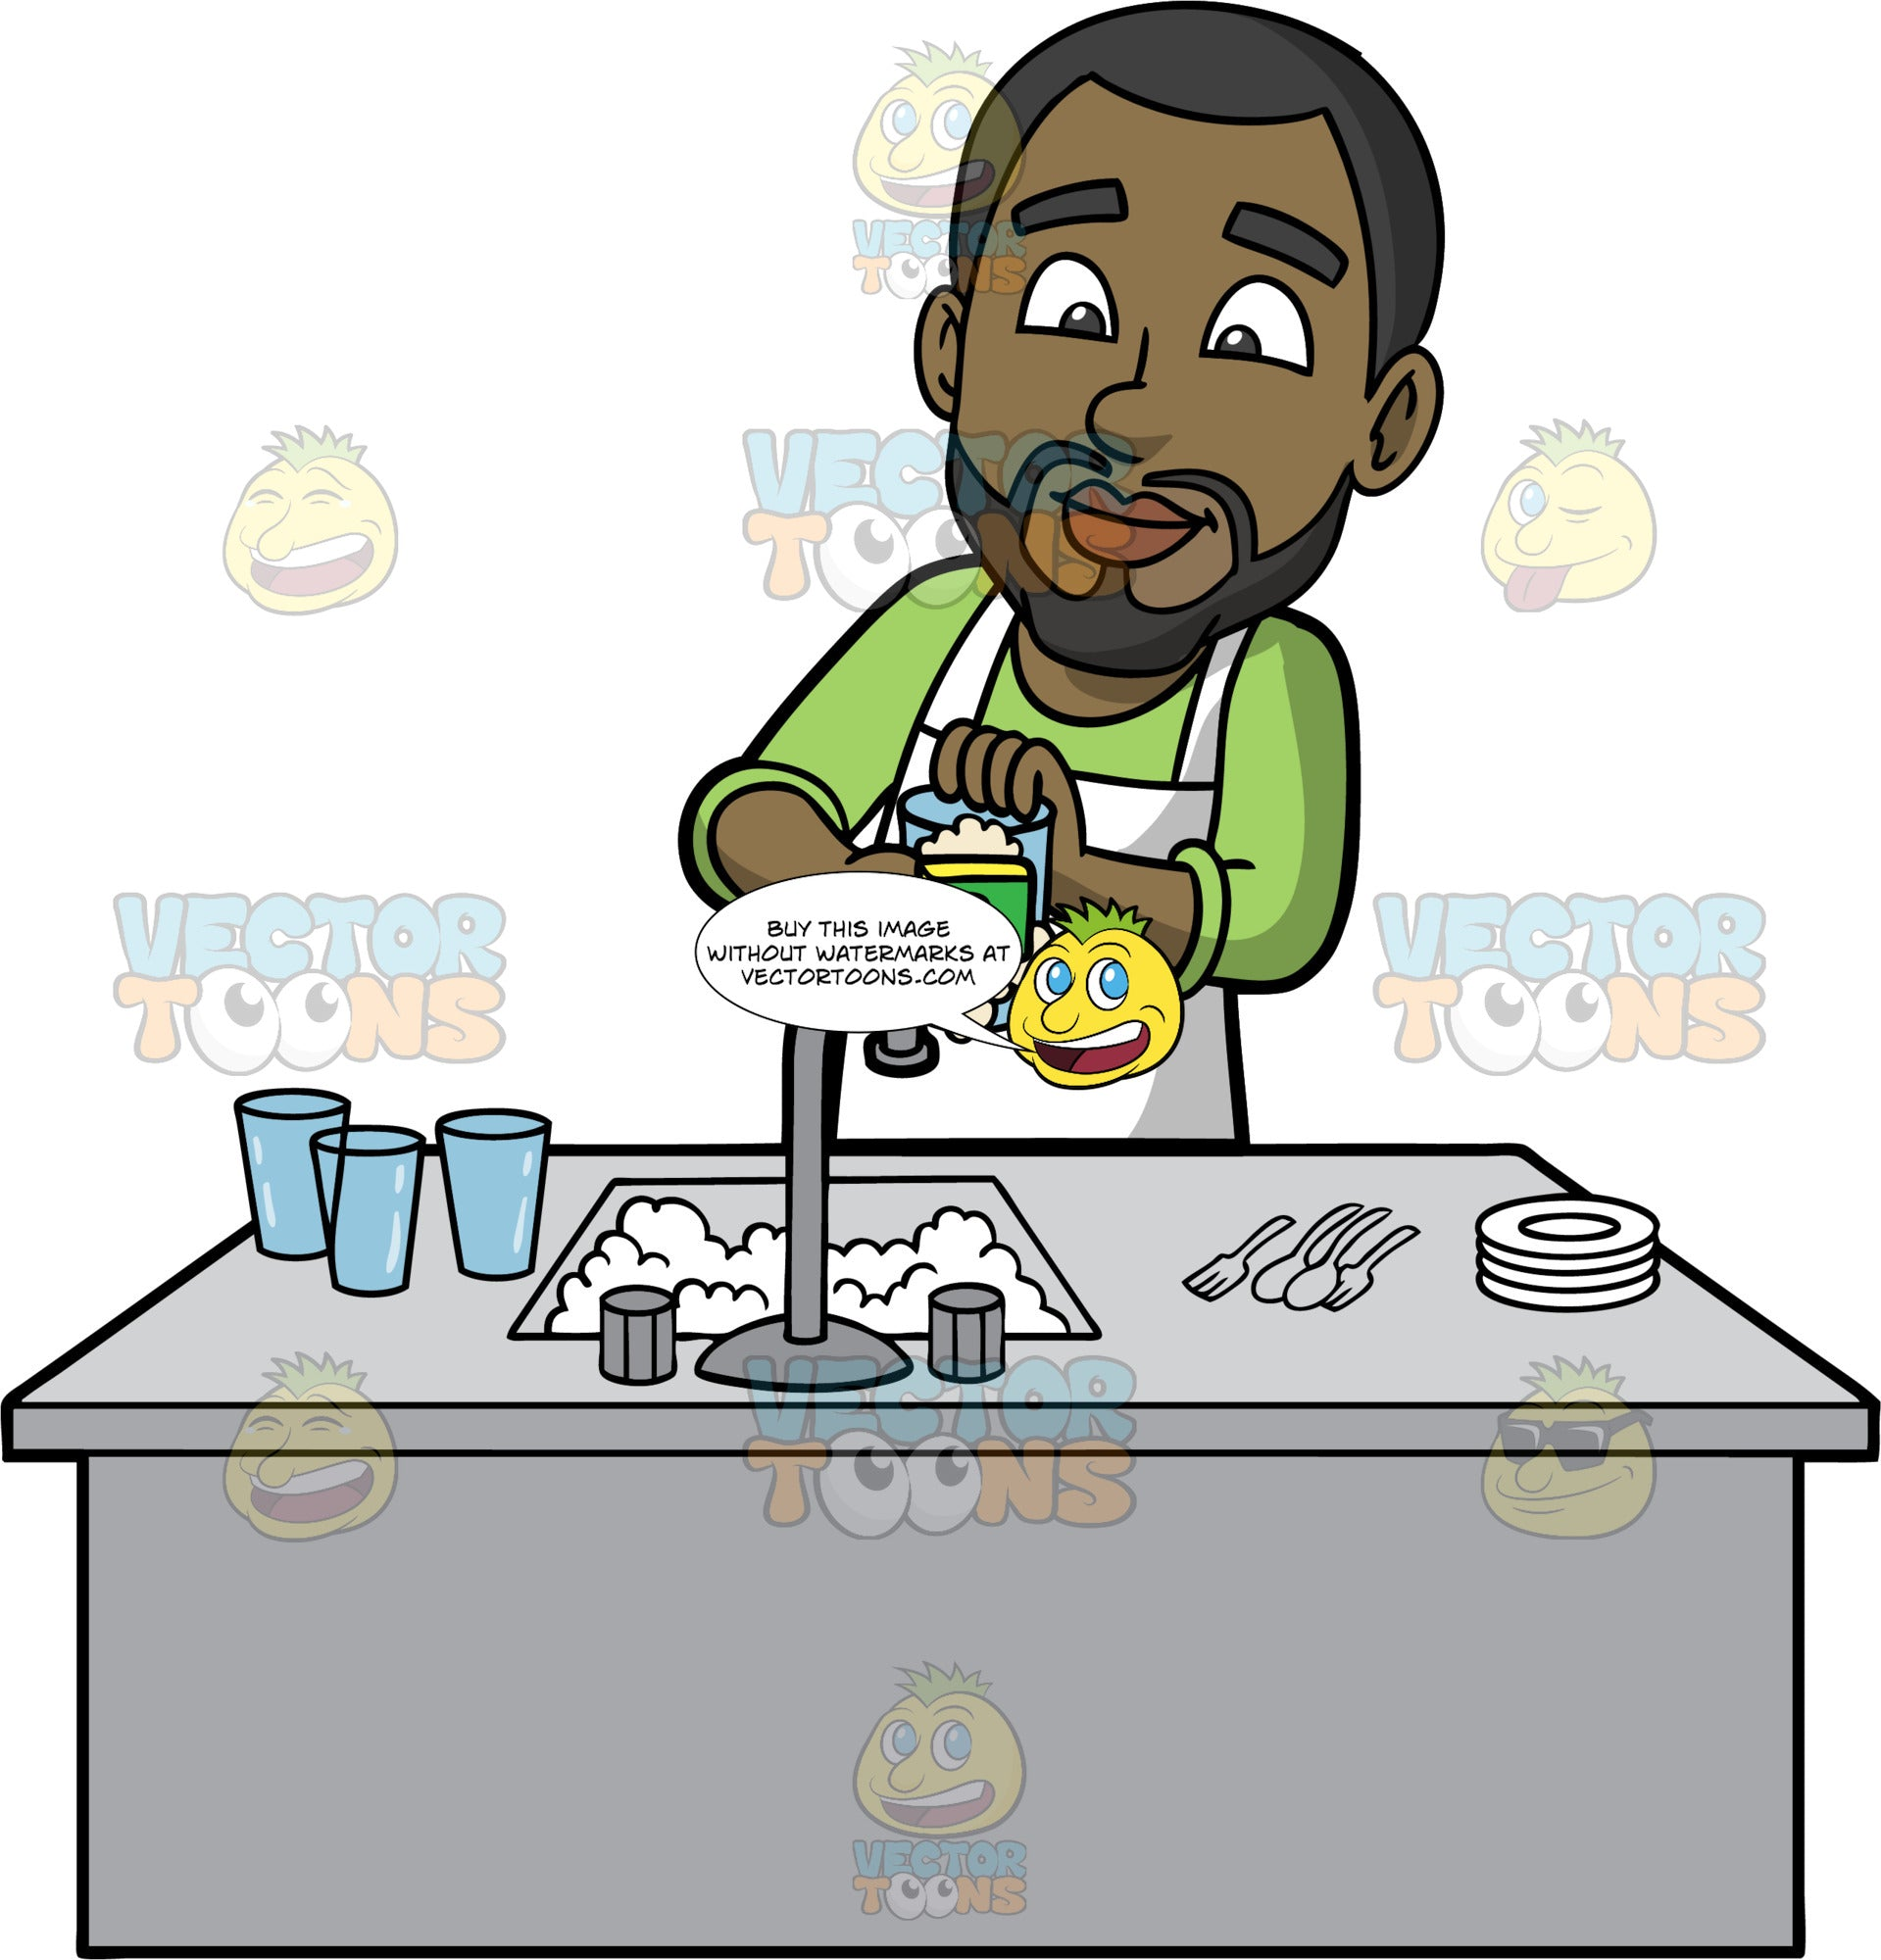 Calvin Washing The Dishes After Dinner. A black man with a beard, wearing a long sleeve green shirt, and a white apron, standing behind a kitchen sink filled with soapy water, and washing a glass using a sponge